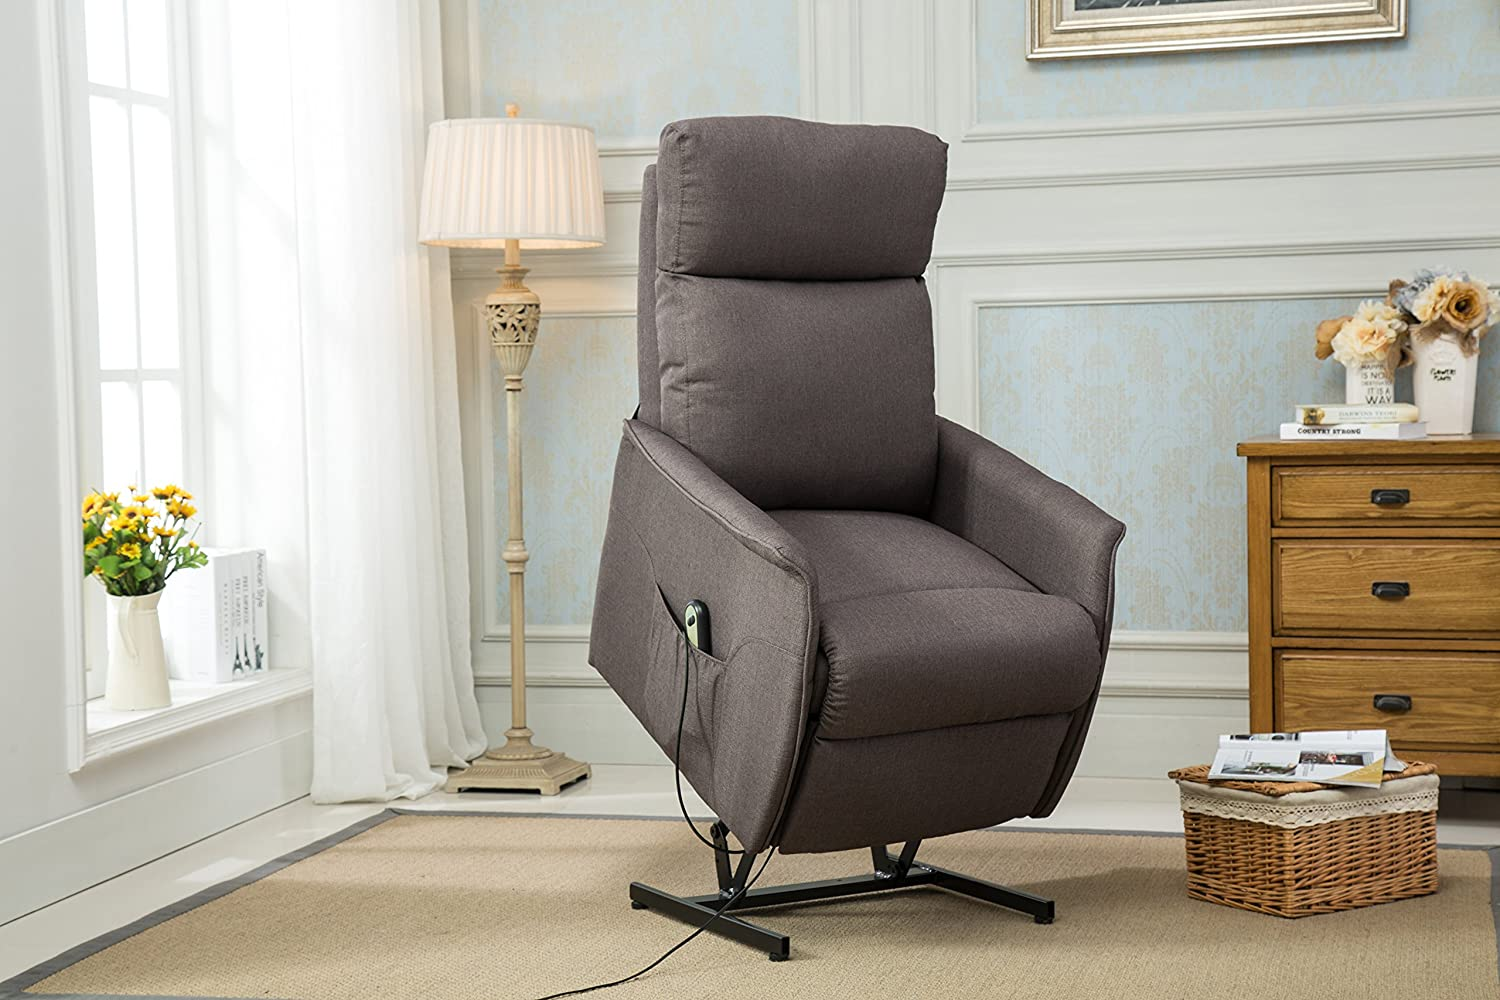 Amazon.com: Classic Power Lift Recliner Living Room Chair (Grey ...